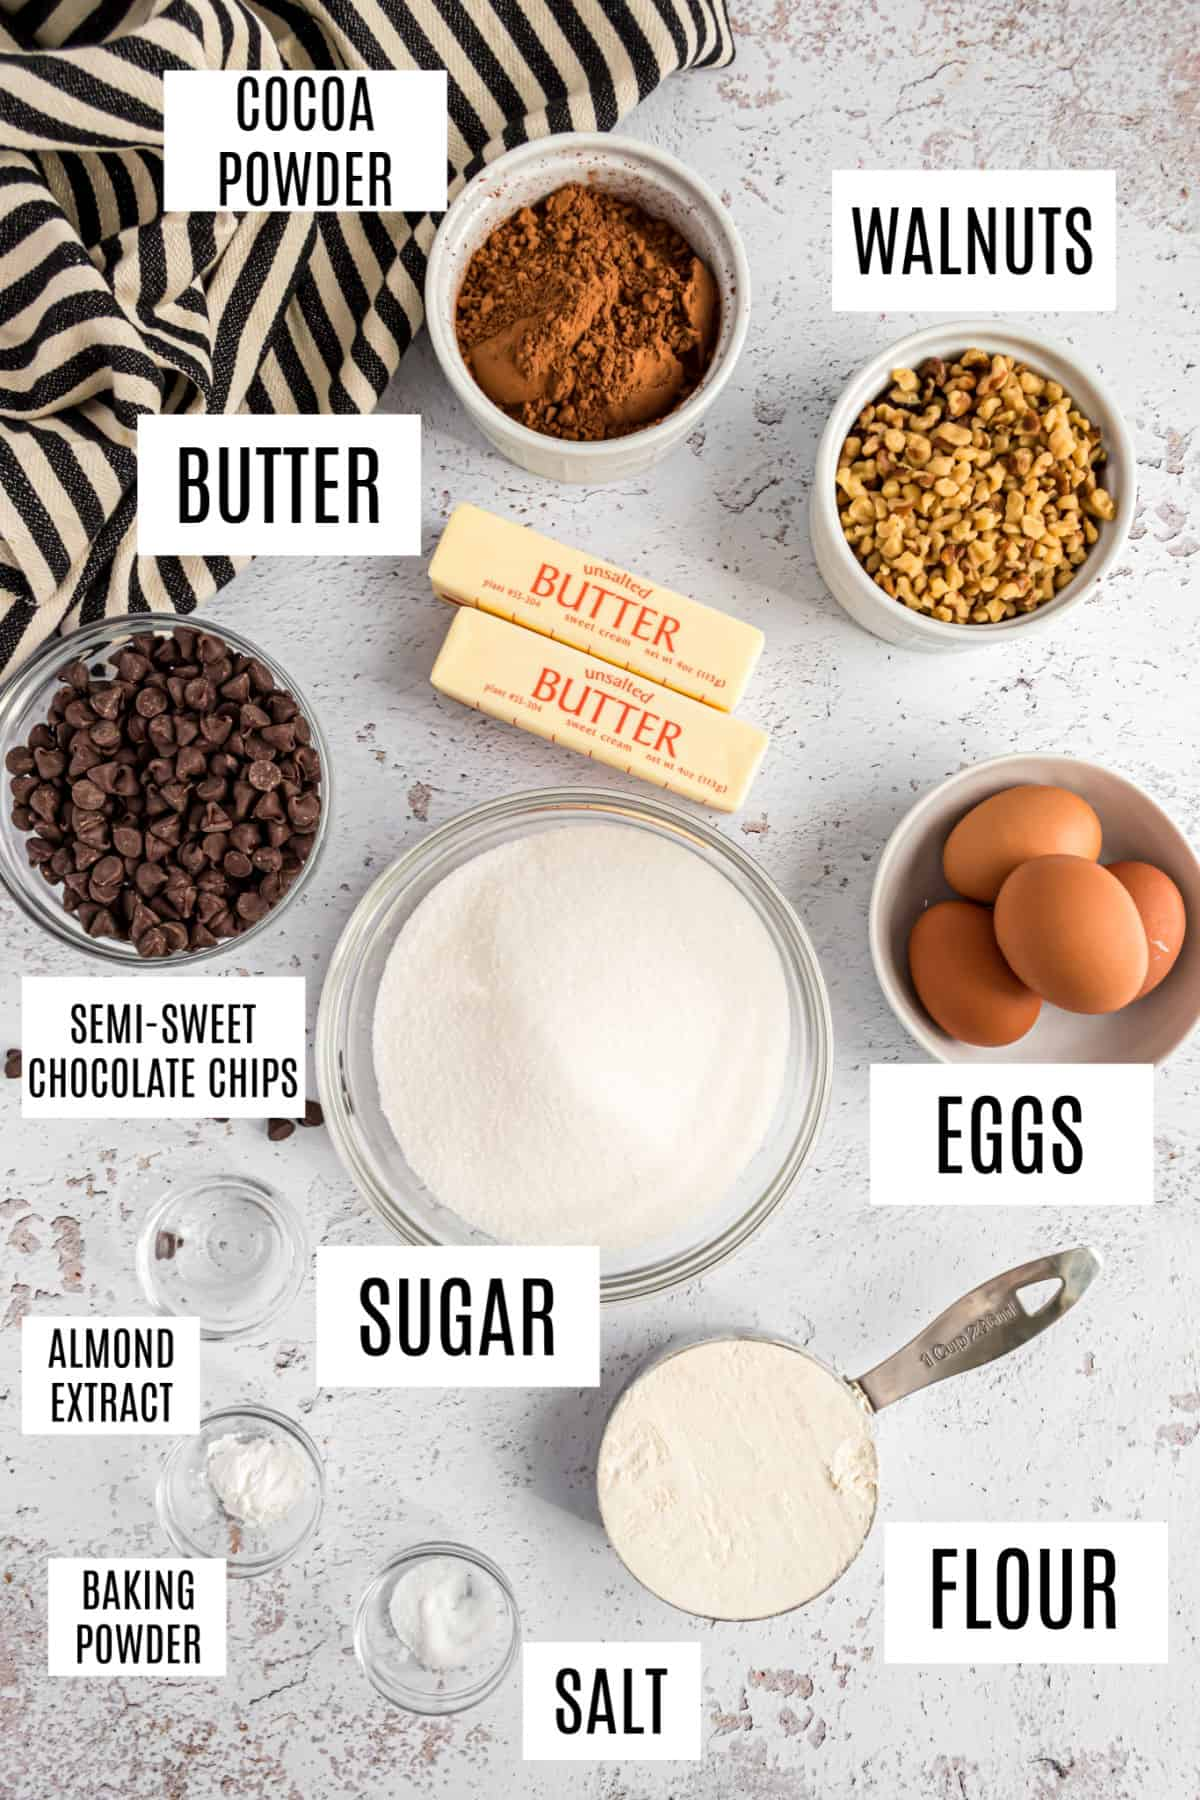 Ingredients needed for walnut brownie recipe.